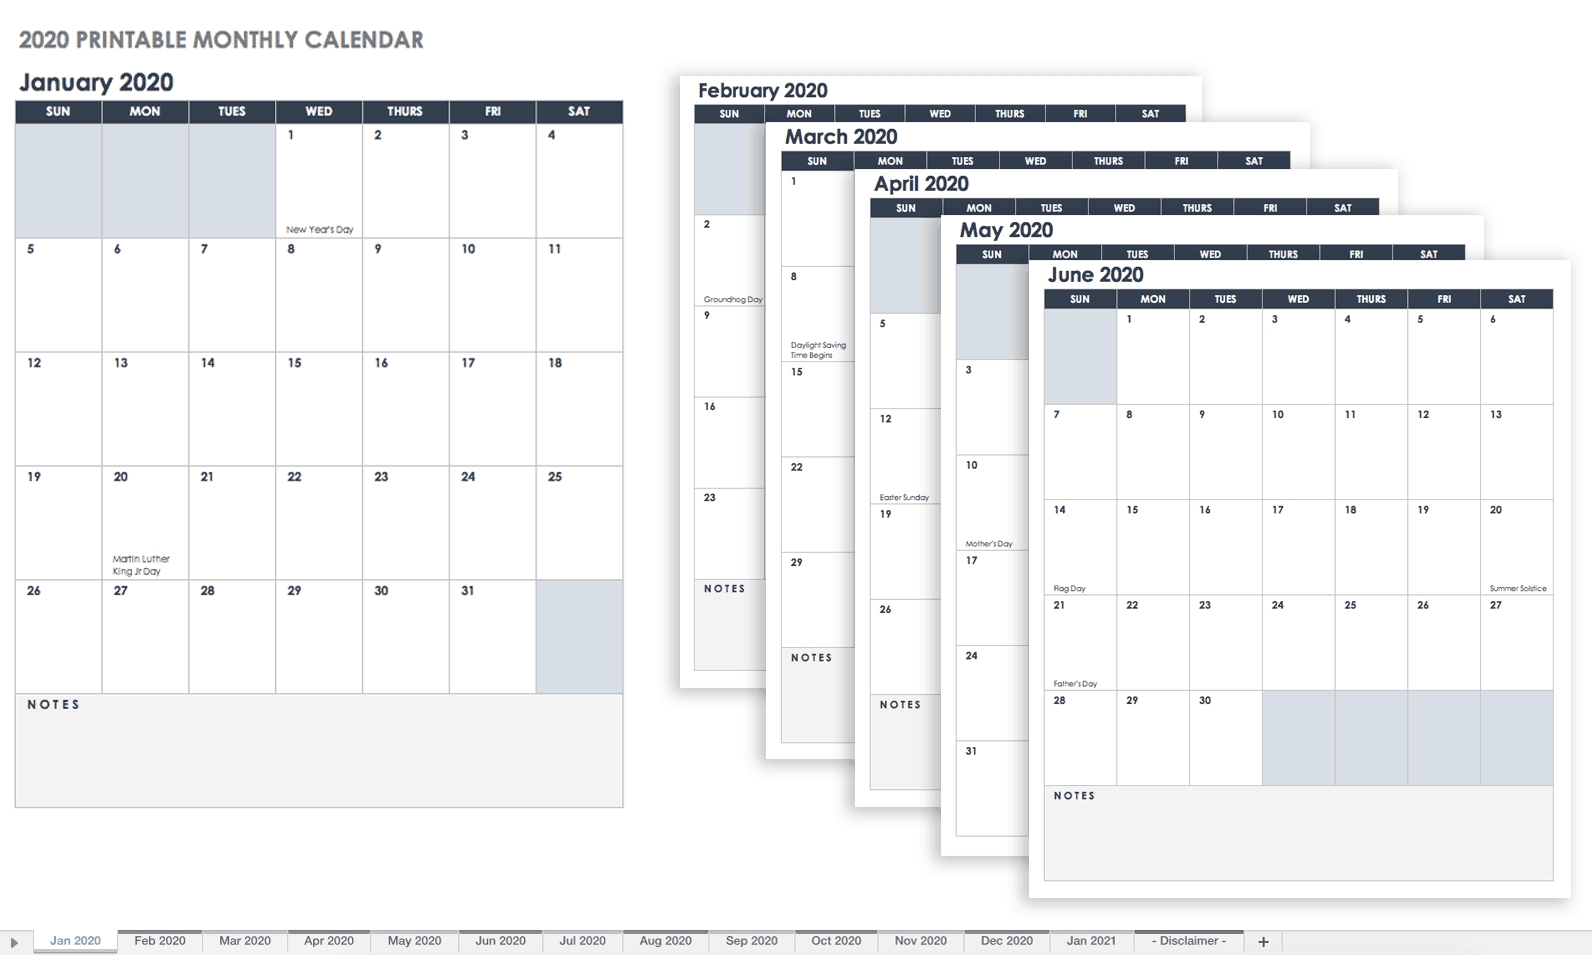 Free Blank Calendar Templates - Smartsheet-12 Month At A Glance Fill In Template Calendar